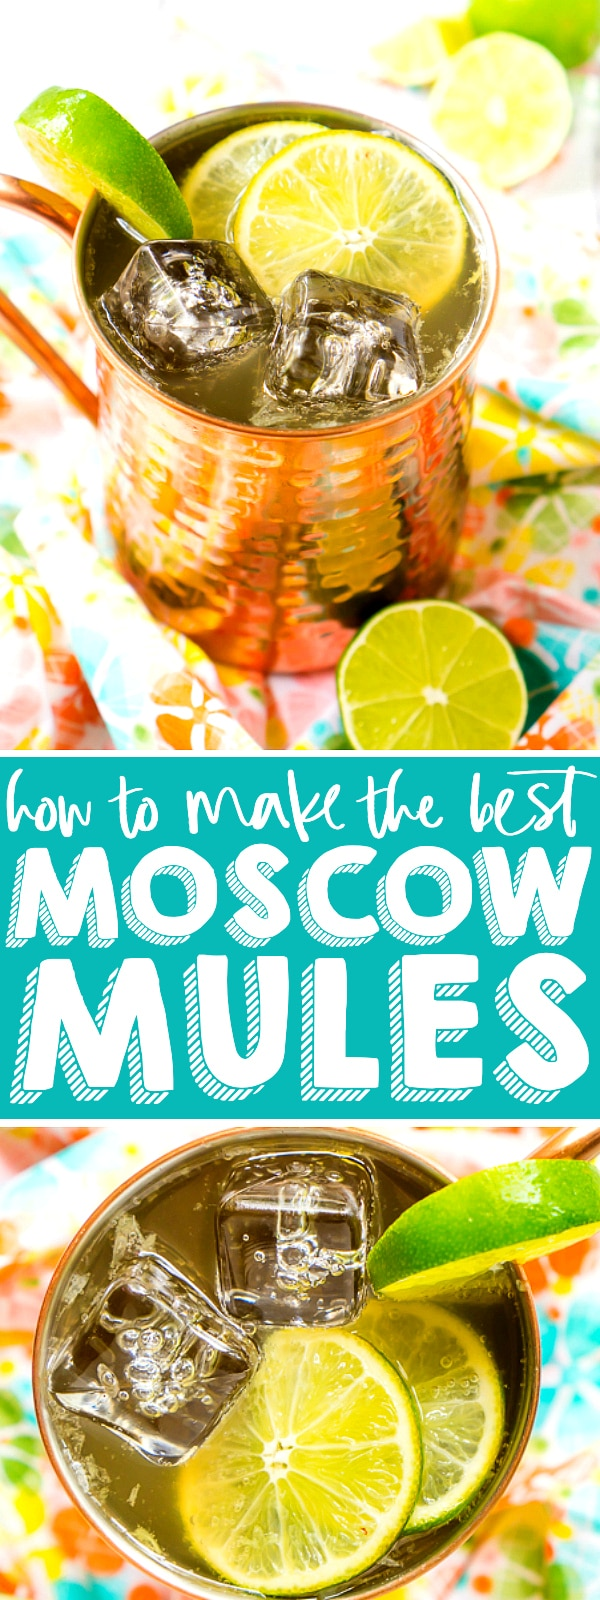 Learn how to make a Moscow Mule with only three ingredients for the perfect summer cocktail that is sweet, tangy, and just a little bit spicy! I'm sharing tips and tricks plus tasty and unique Moscow Mule recipes! | THE LOVE NERDS #cocktailrecipe #summerdrinks #moscowmulerecipe